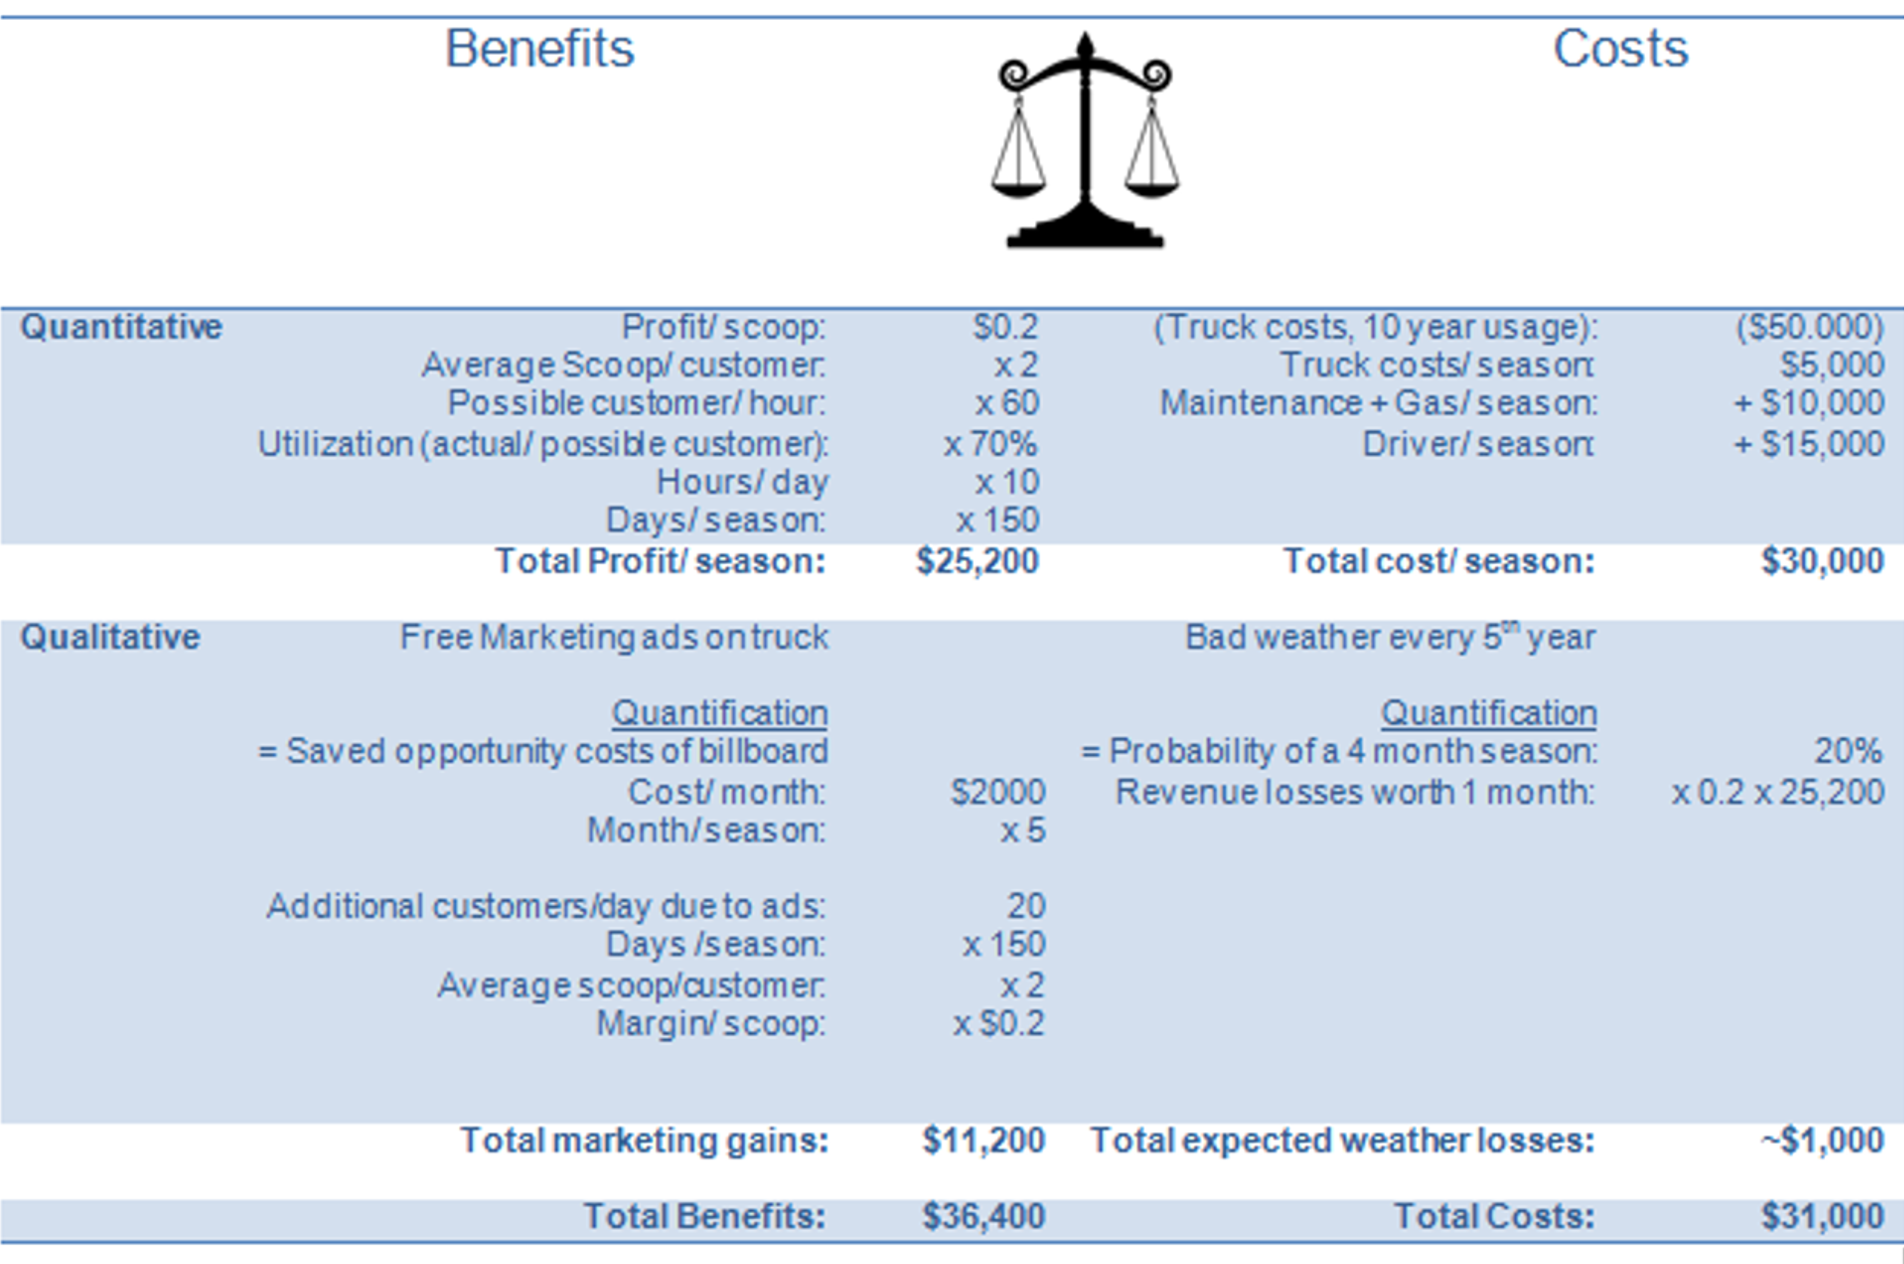 cost benefit analysis for cango Cost benefit analysis cango 1095 words more about sap implementation cost benefit analysis essay capital budgeting: cost-benefit analysis 895 words | 4 pages.